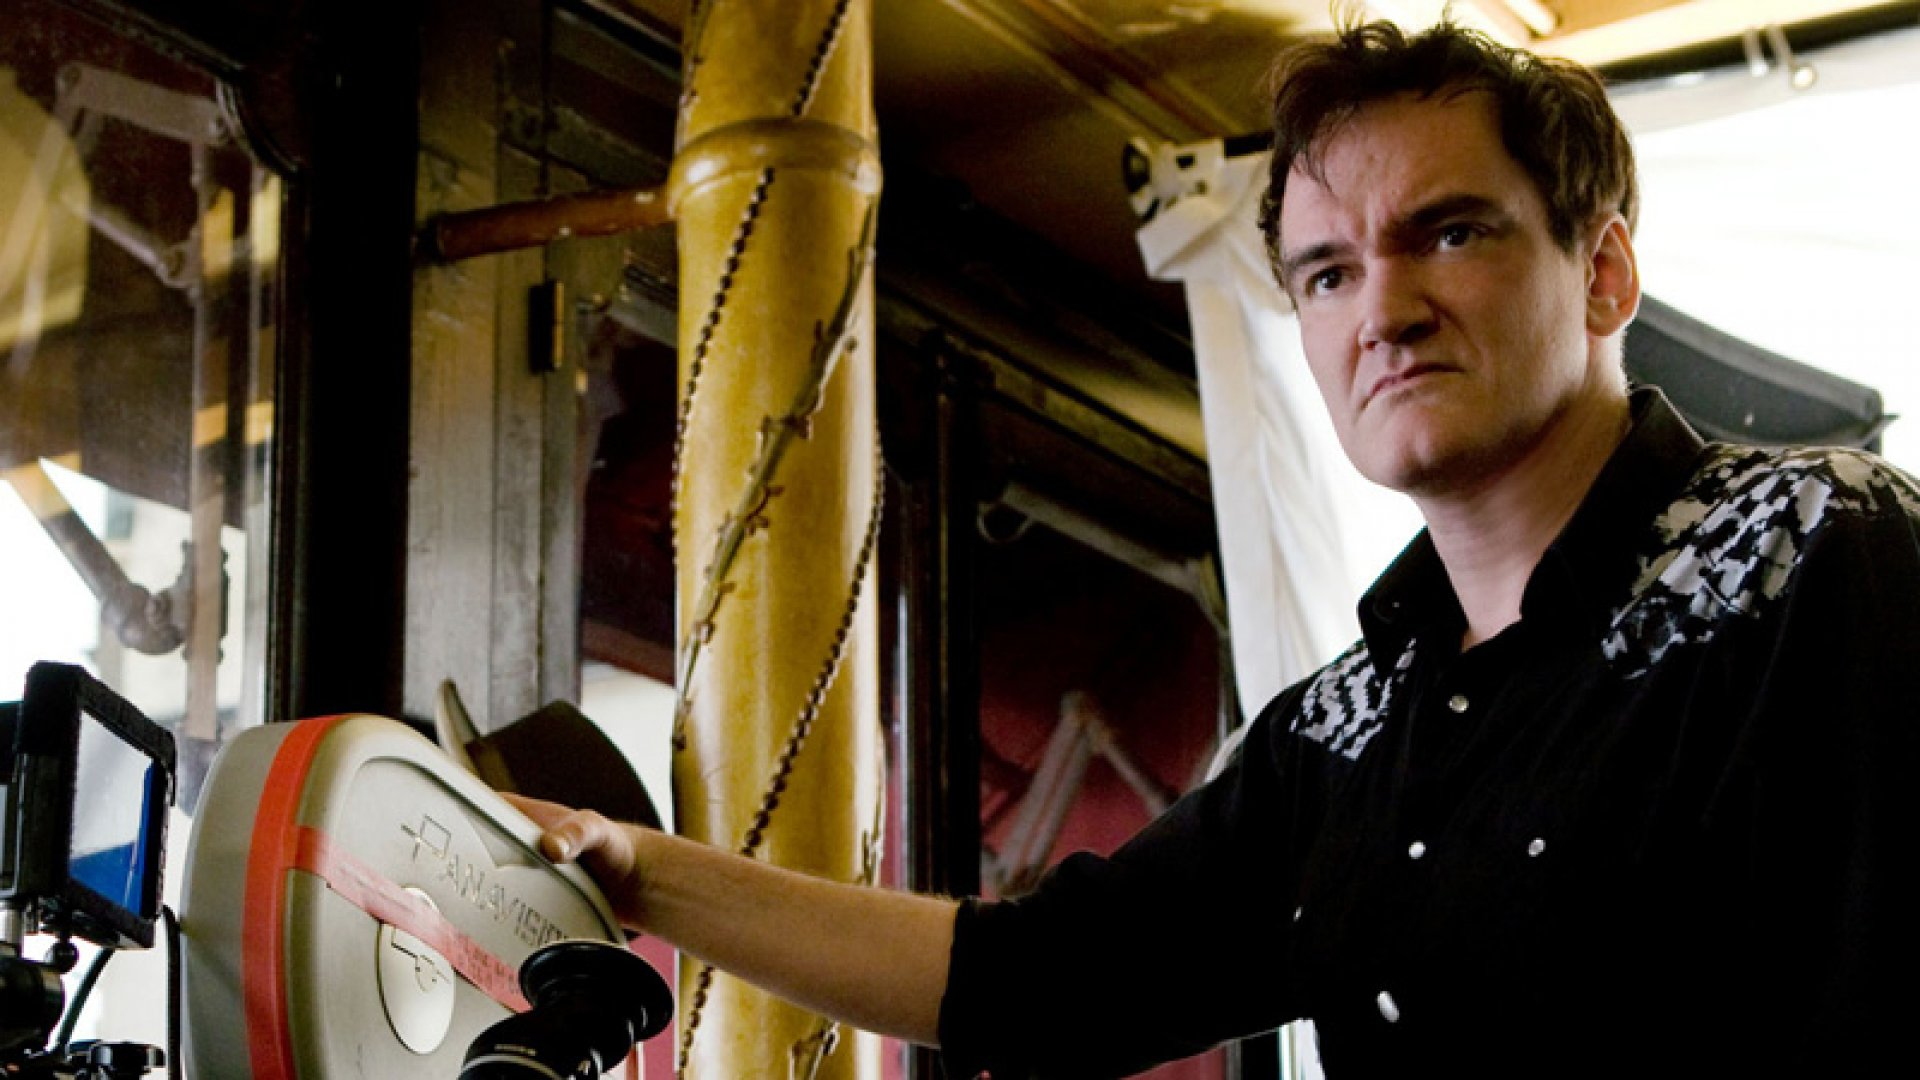 Can Quentin Tarantino Save Kodak?